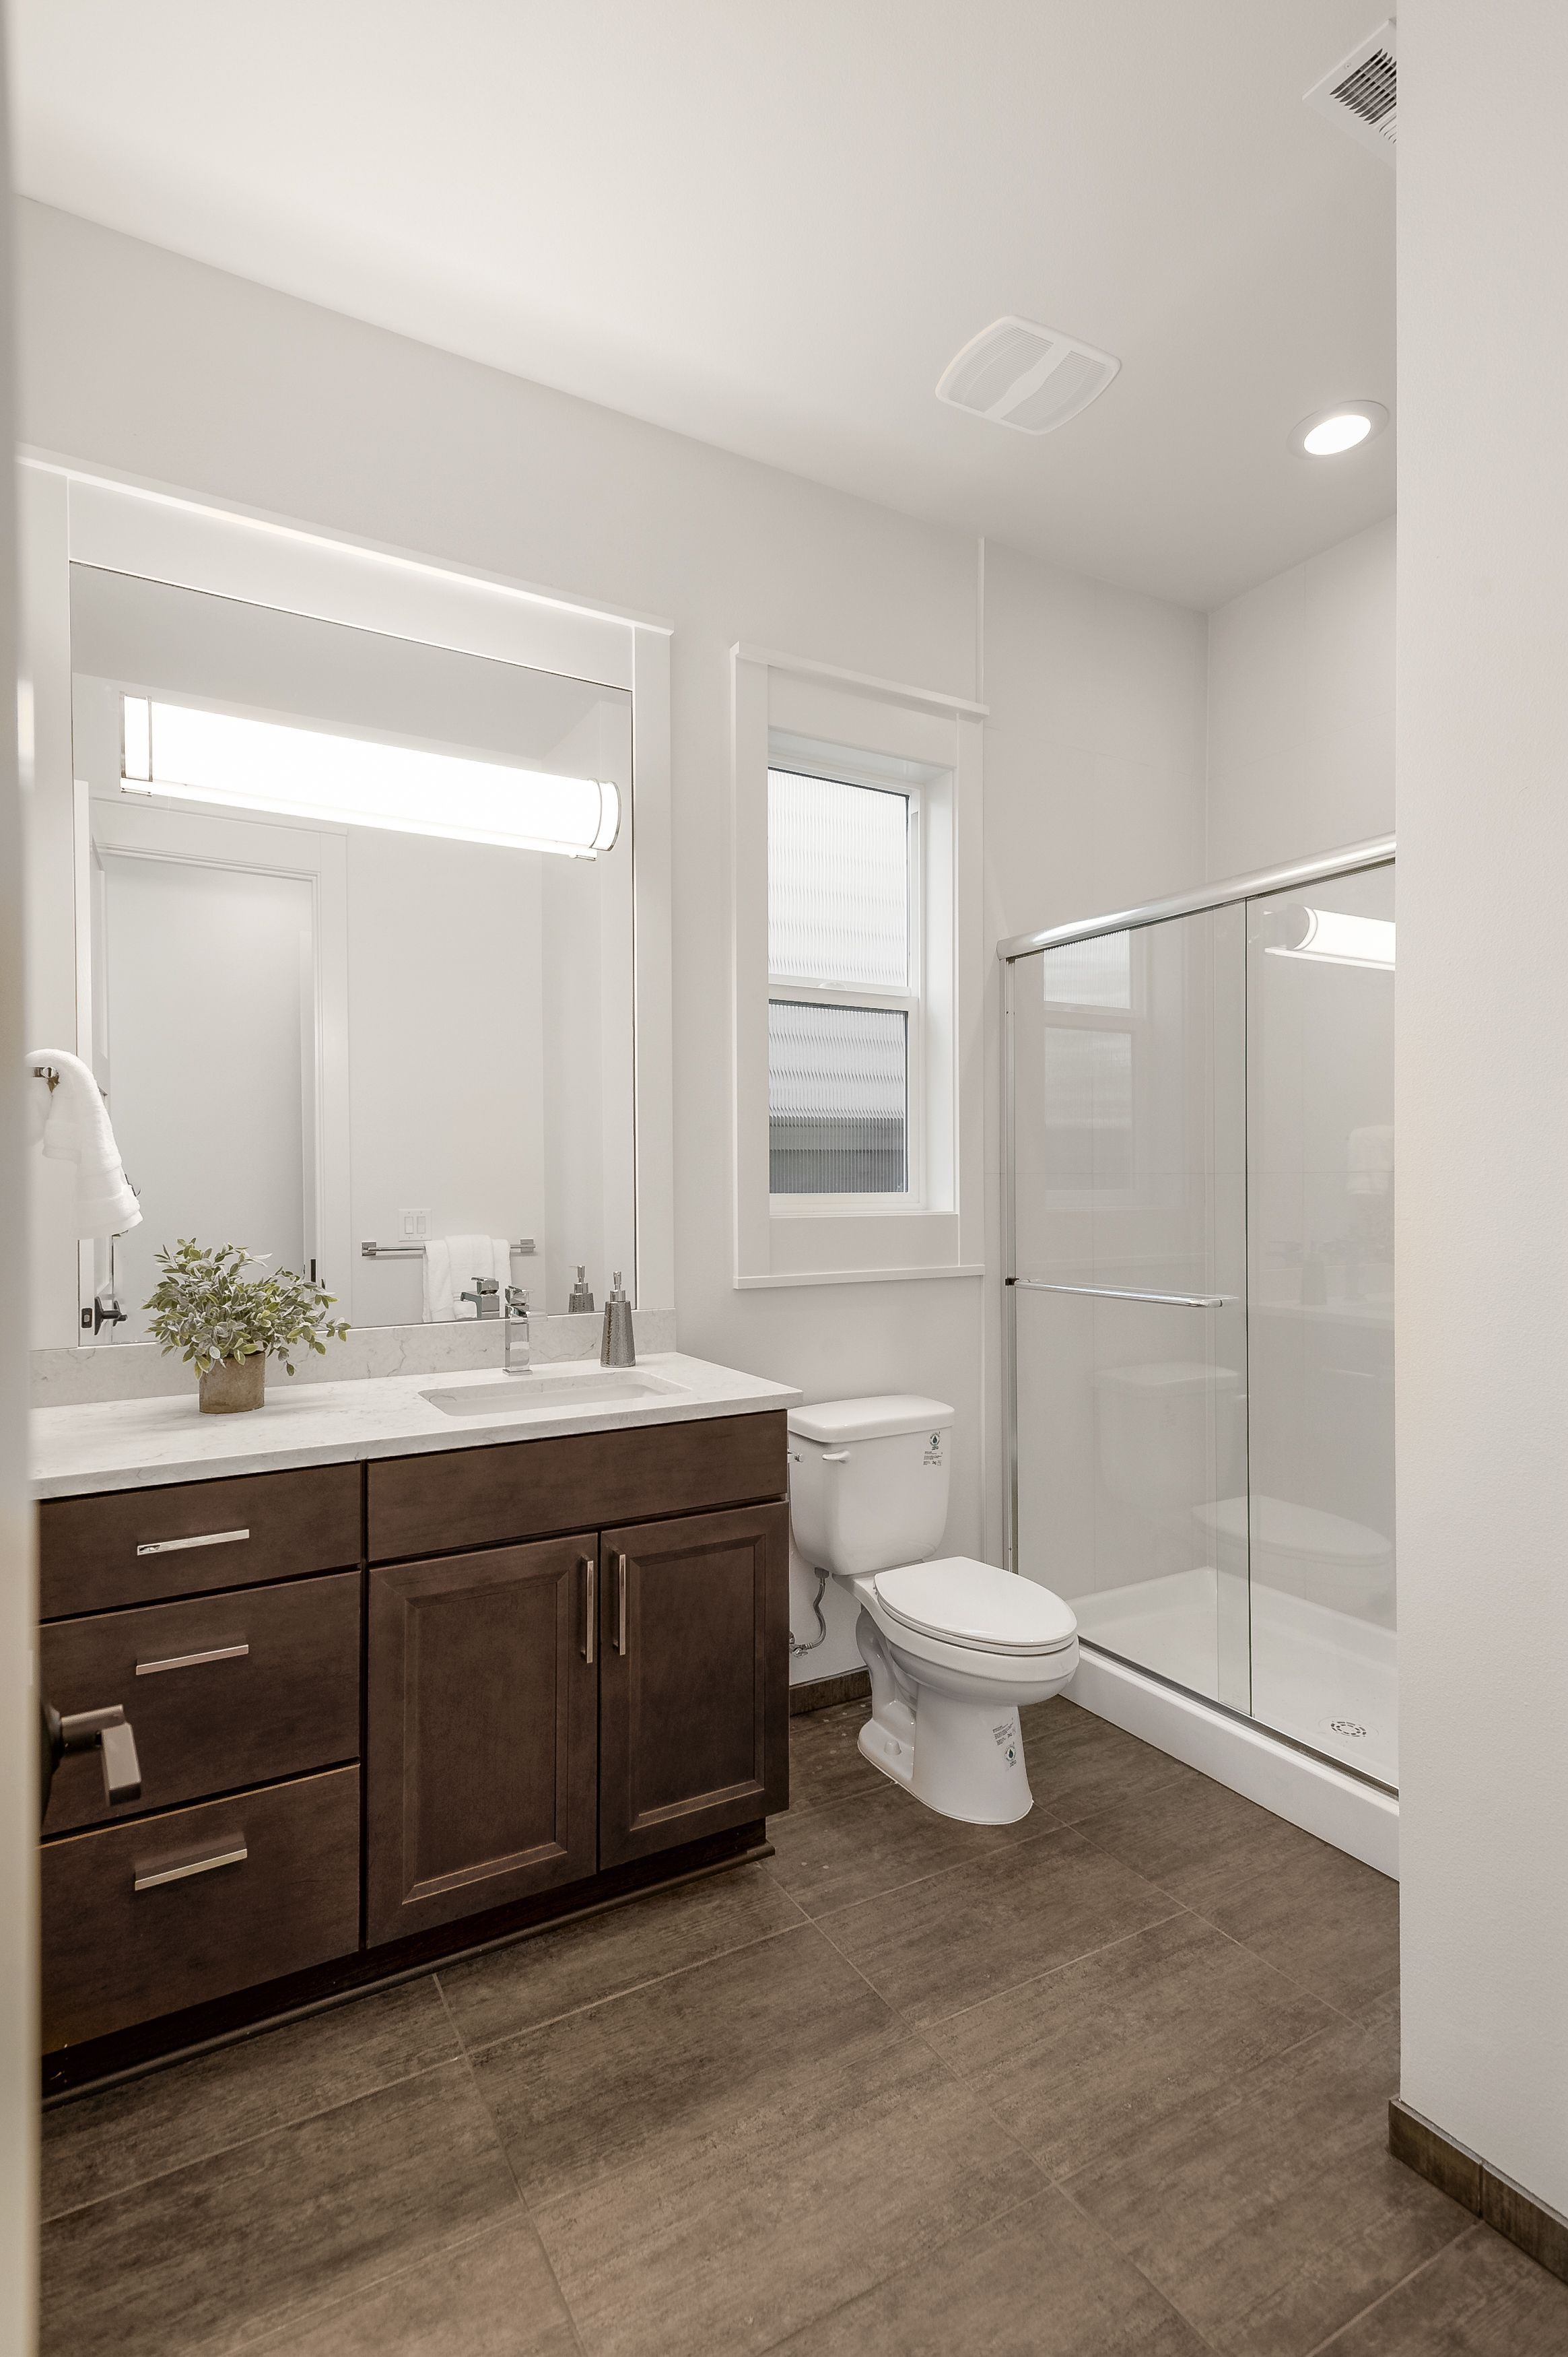 Bathroom featured in the Homesite 6 Birch By Millennial Builders in Bremerton, WA